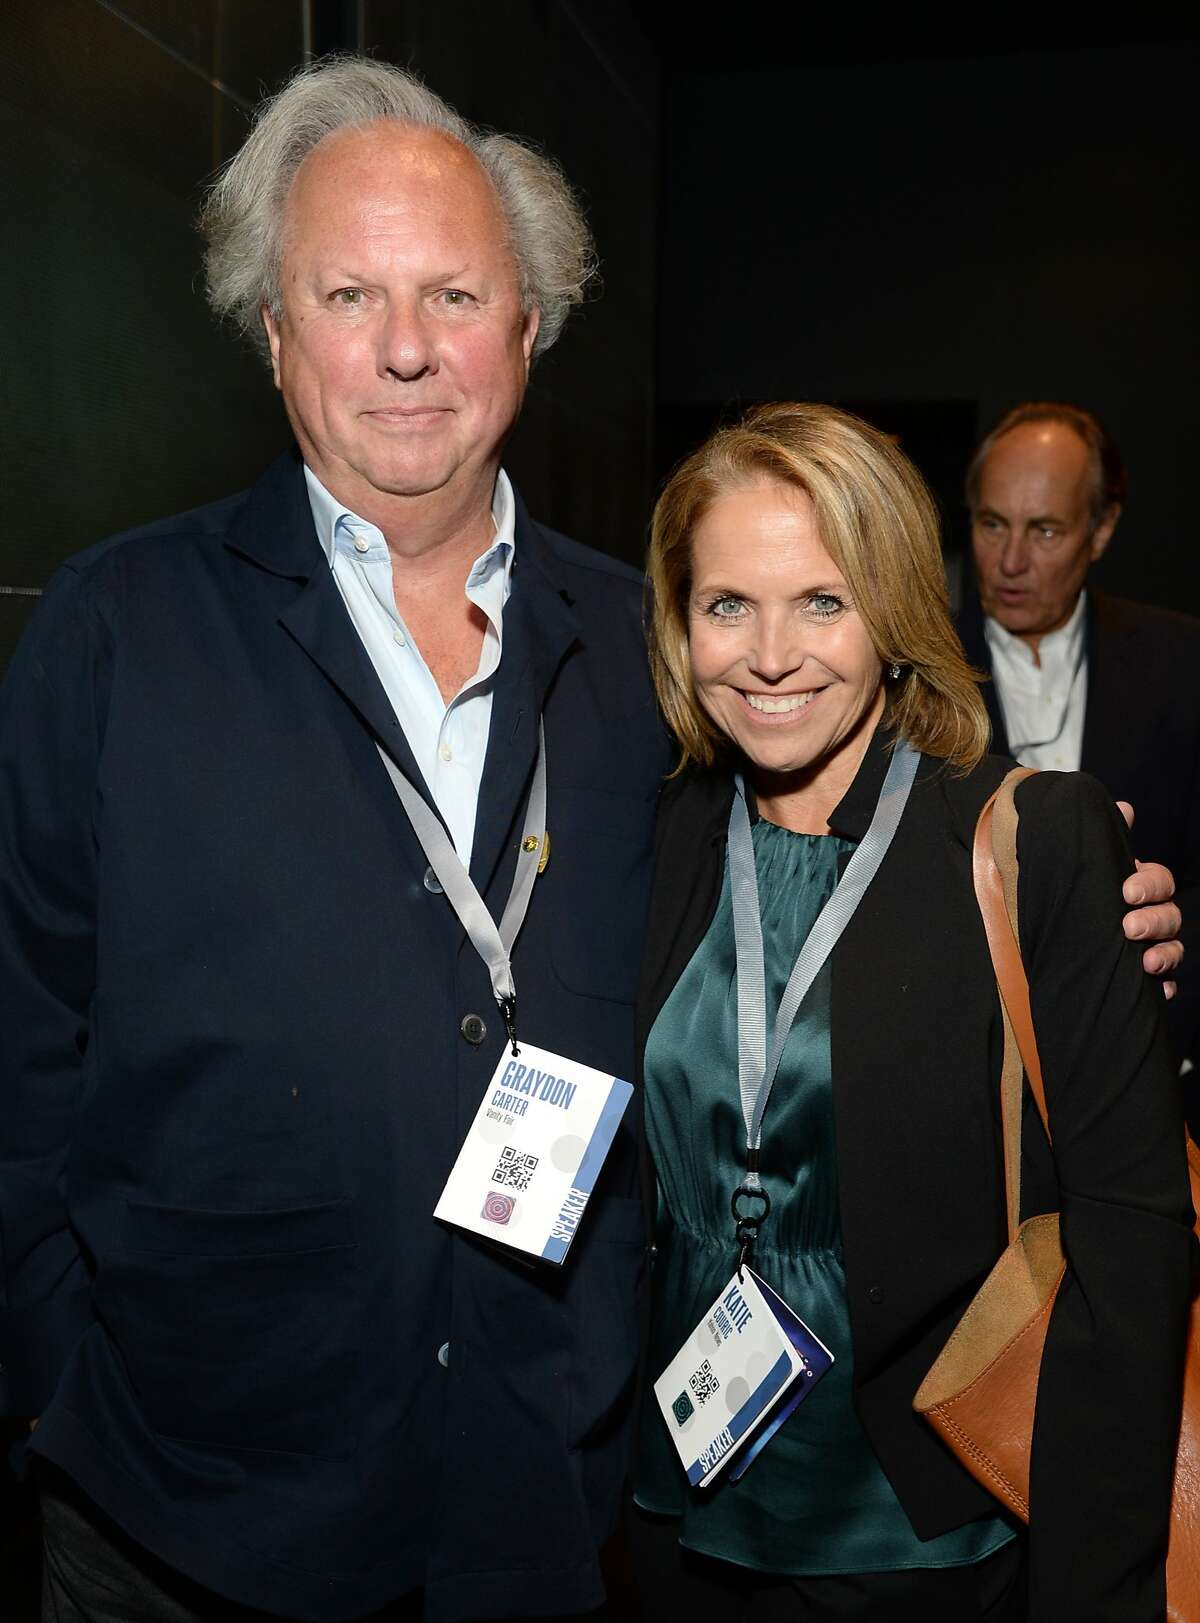 SAN FRANCISCO, CA - OCTOBER 08: Vanity Fair Editor-in-Chief Graydon Carter and TV Journalist Katie Couric attend the Vanity Fair New Establishment Summit at Yerba Buena Center for the Arts on October 8, 2014 in San Francisco, California. (Photo by Michael Kovac/Getty Images for Vanity Fair)